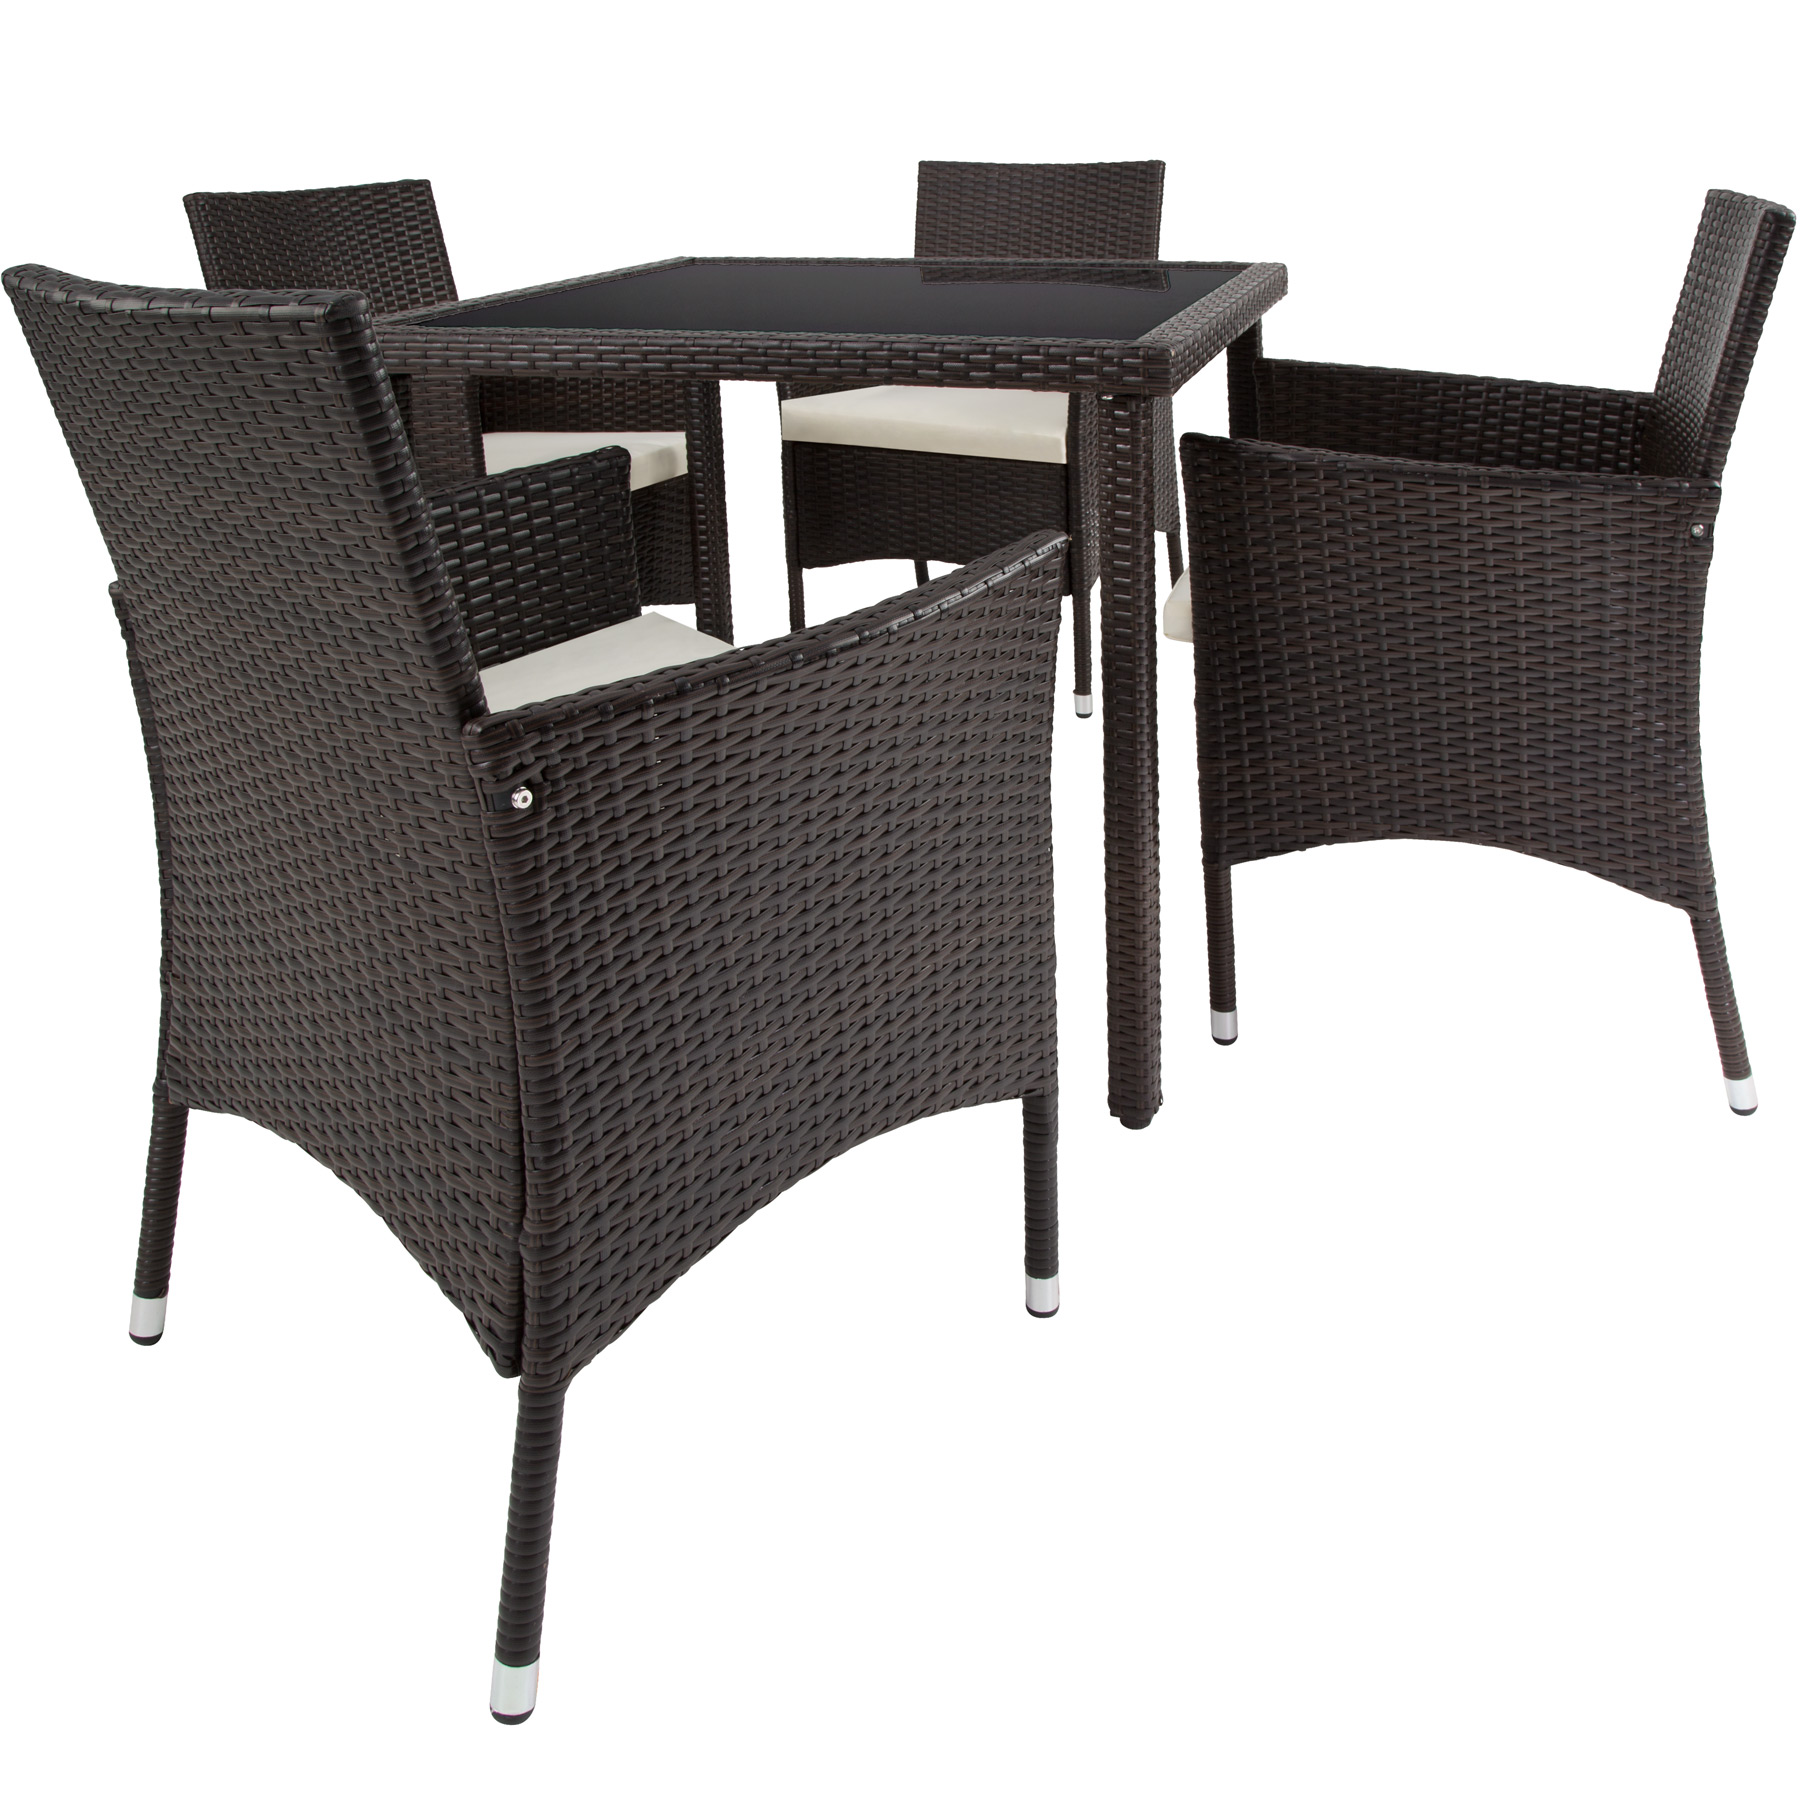 4 seater table rattan garden furniture dining chairs set for Sofas a medida sevilla